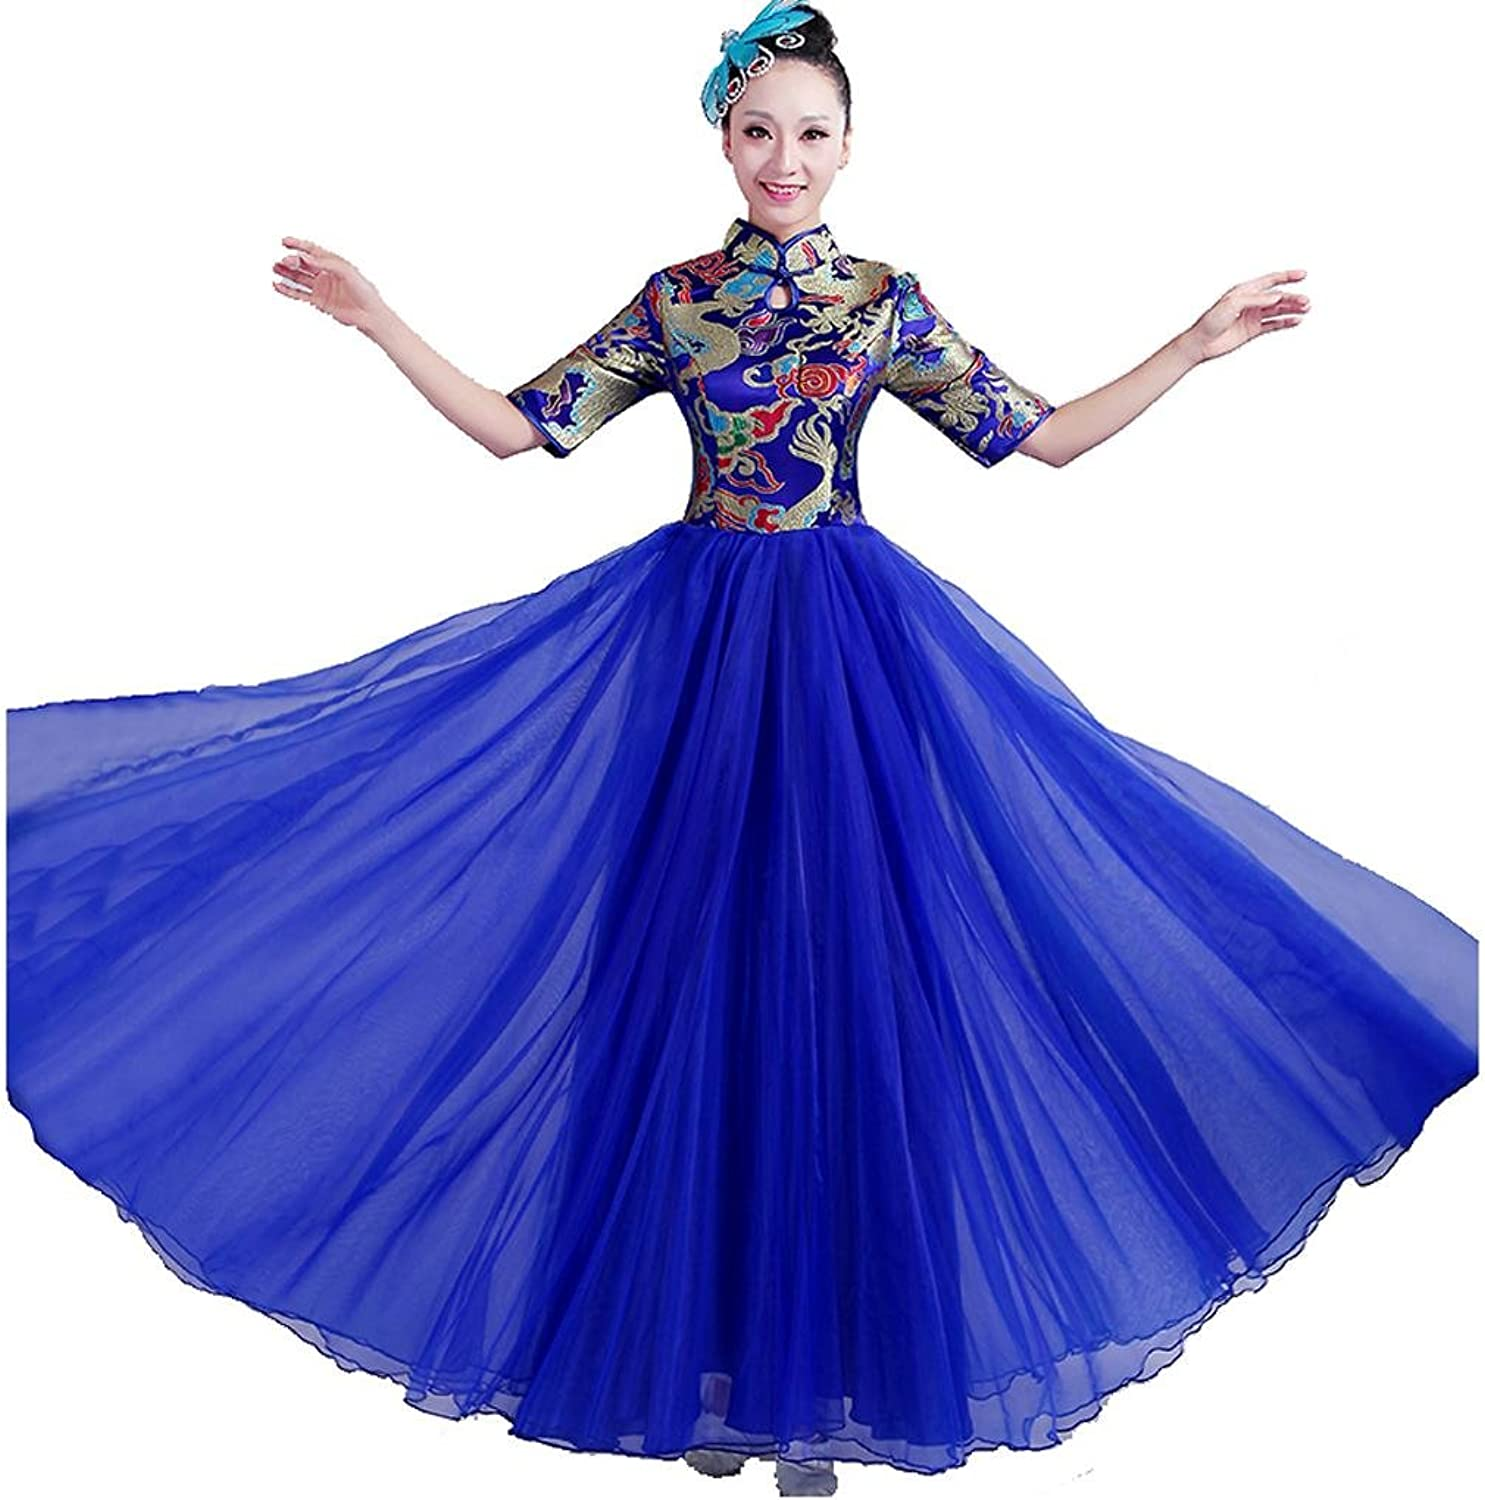 Byjia Adult Women Dance Long Dresses Opening Big Skirt Printing Embroidery Sequins Modern Chorus Nation Classical Stage Group Team Performances Costumes